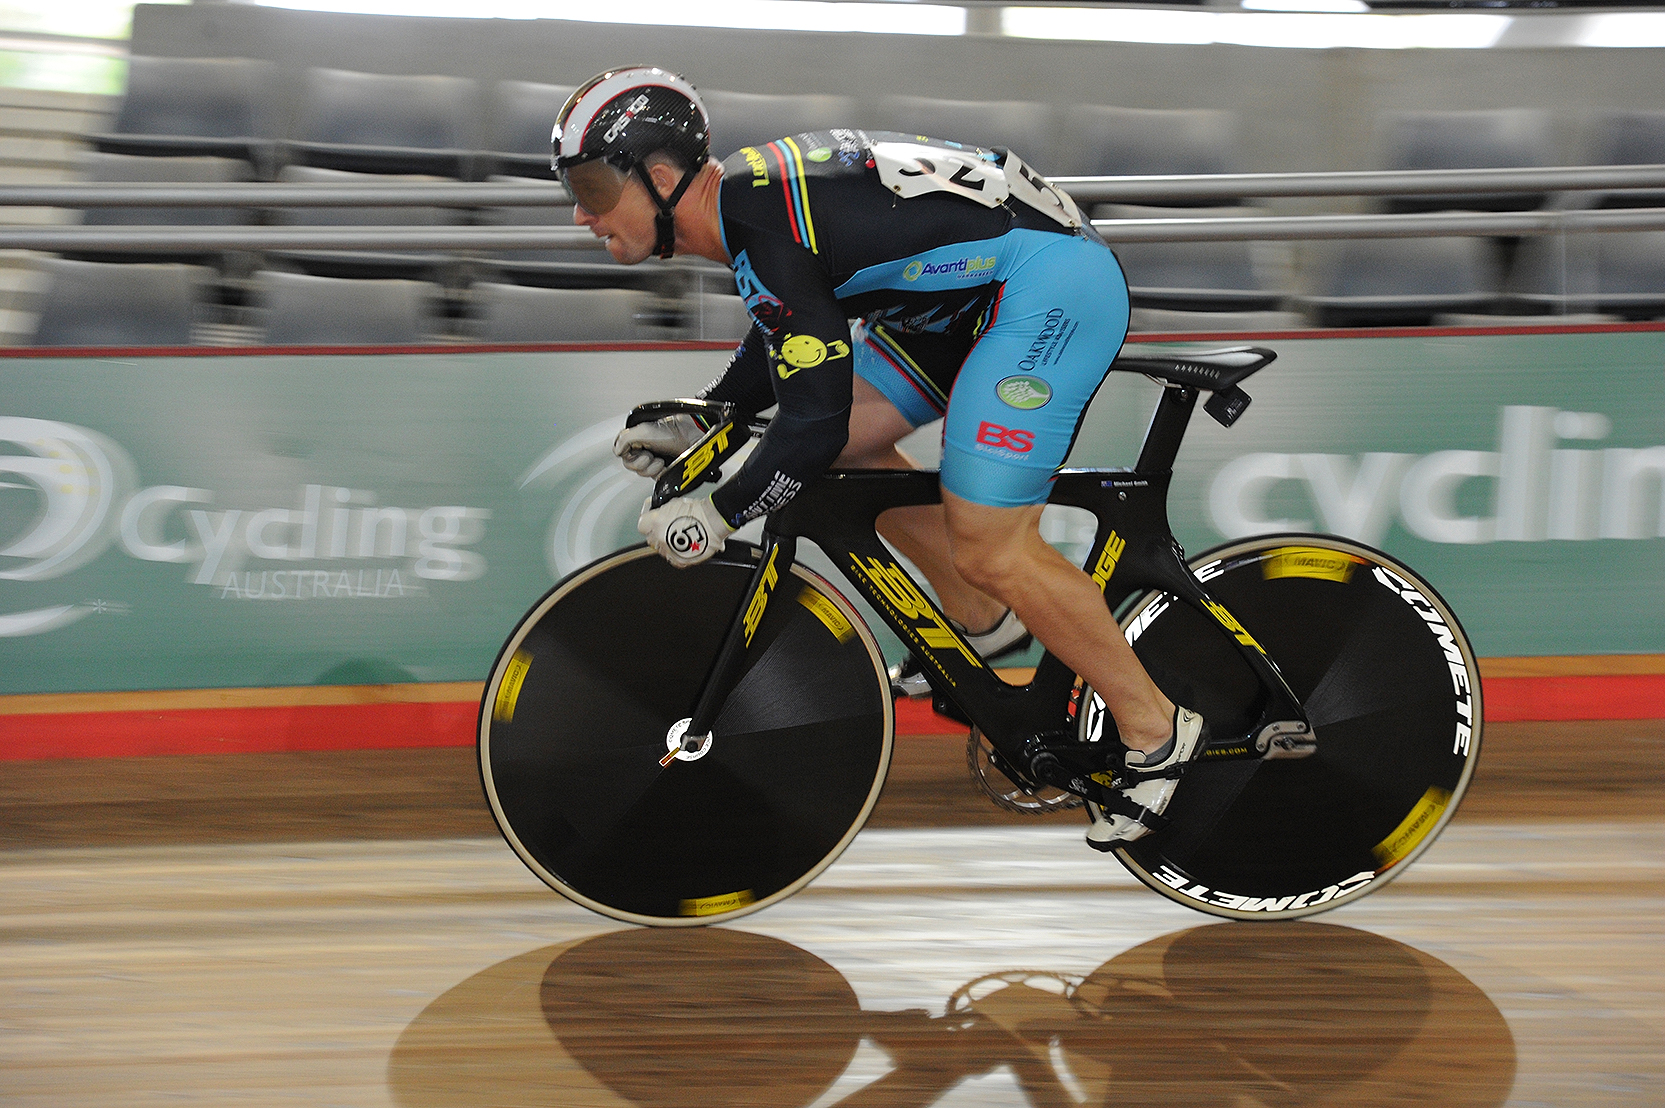 Mike Smith   * A strong BiciSport contingent will contest the CA Masters Nationals in Melbourne from this Wednesday. Mike Smith, Kevin Babakian & Lise Benjamin will lead the sprinters. The Enduro riders will include Kirstie Dolton, Mike Lawson, James Thornton and Peter Verhoeven